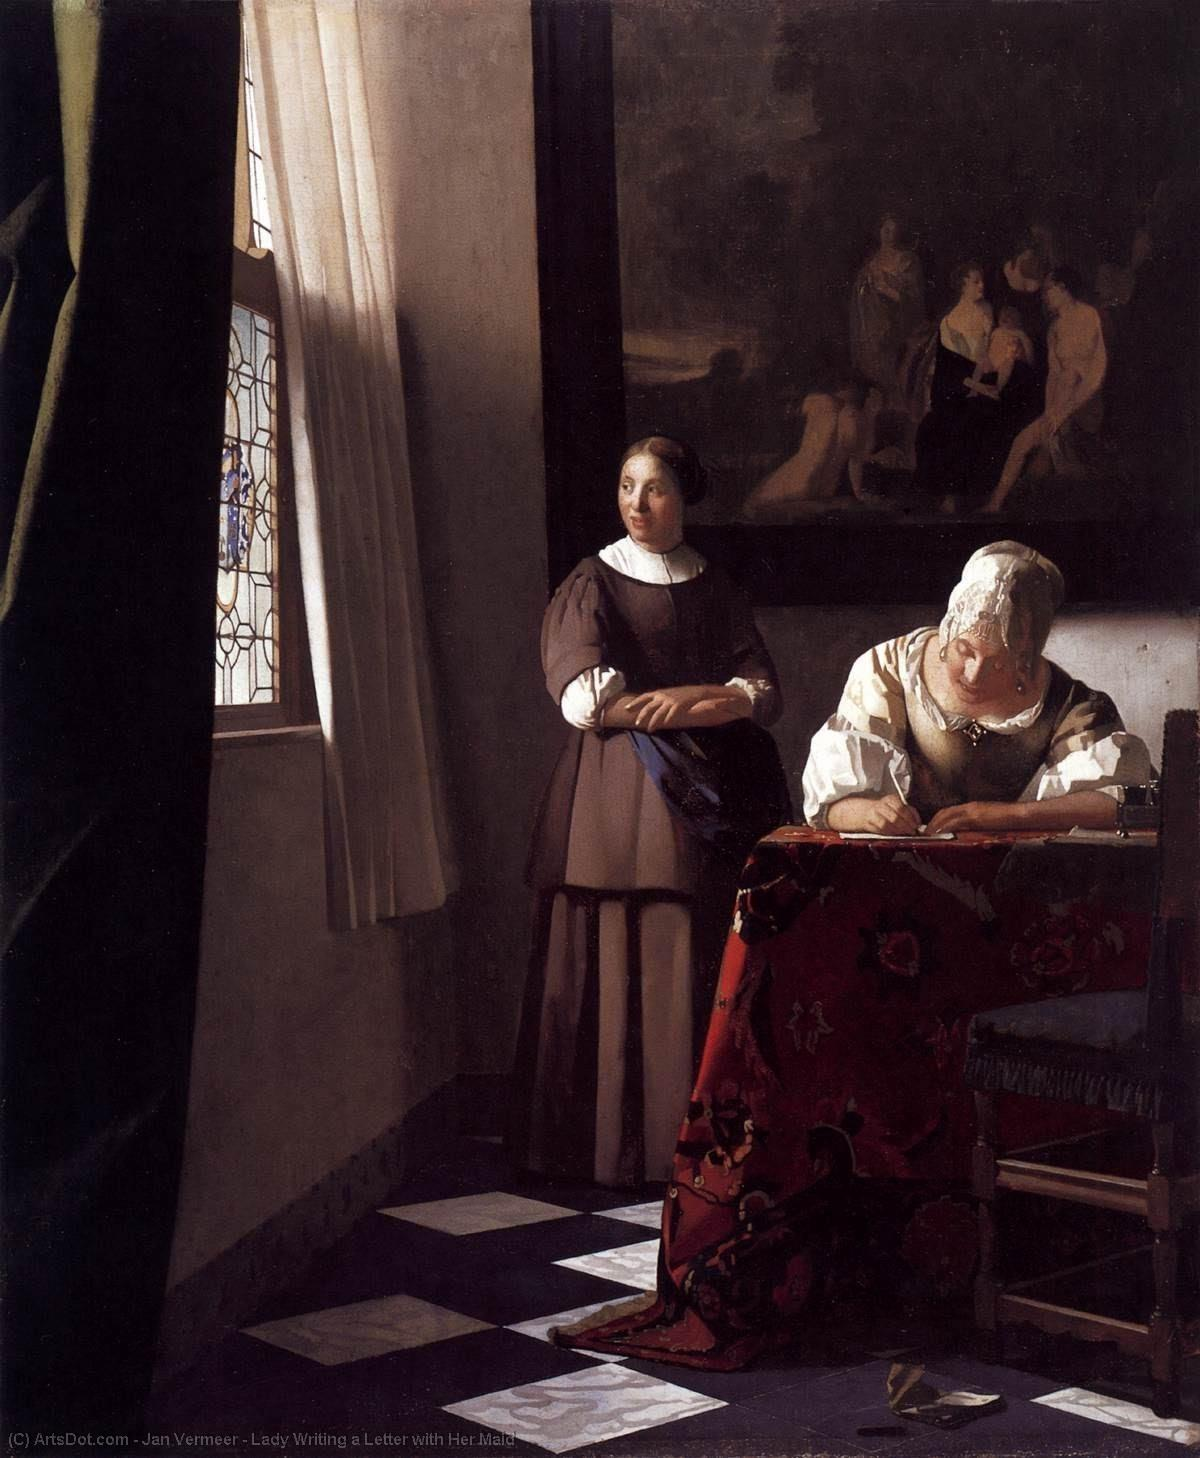 Lady Writing a Letter with Her Maid, 1670 by Jan Vermeer (1632-1675, Netherlands) | Reproductions Jan Vermeer | ArtsDot.com